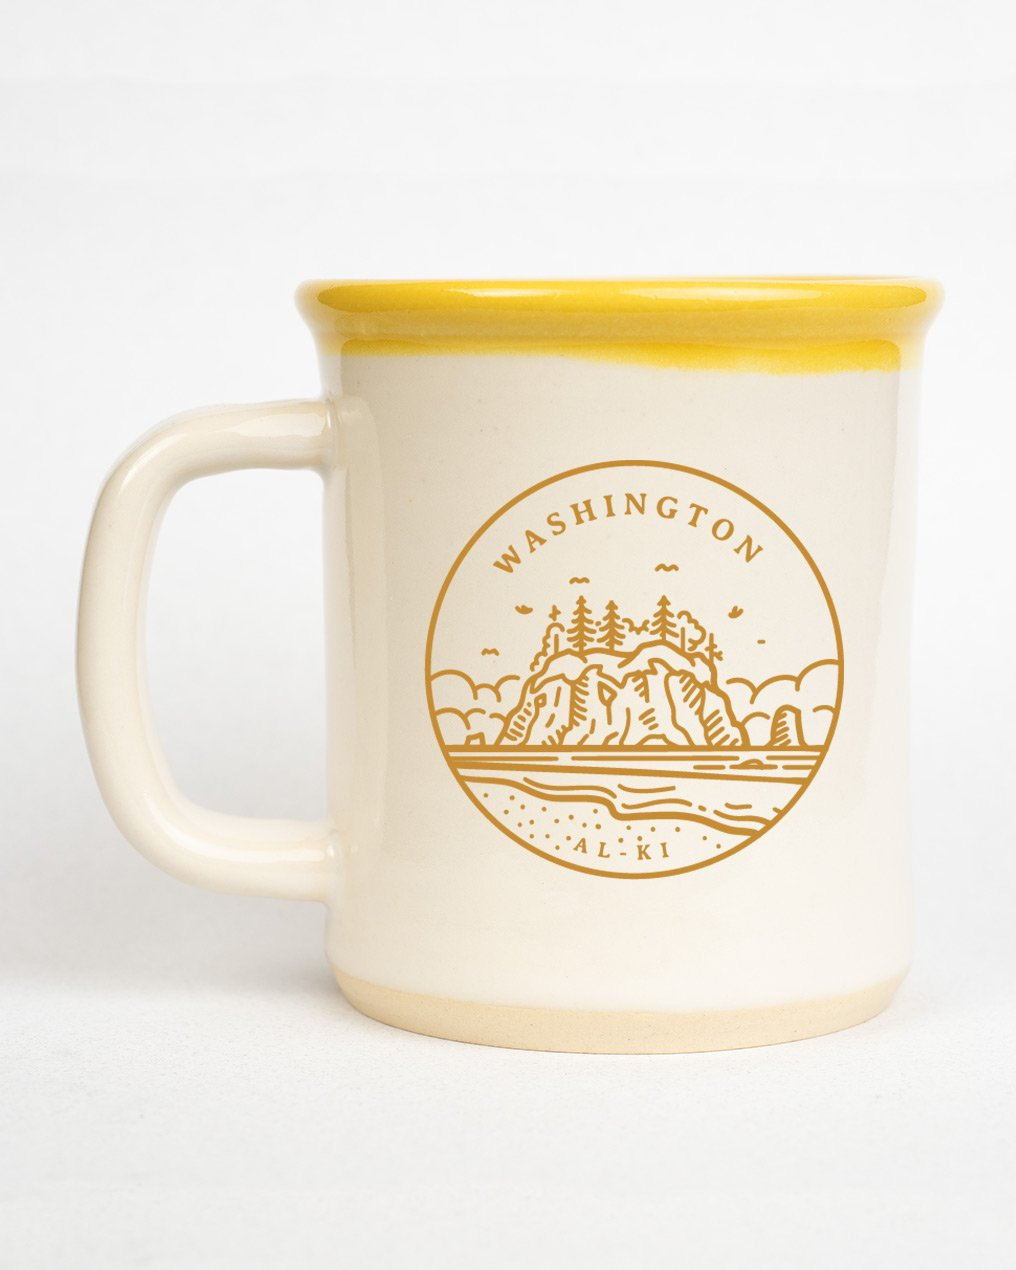 Washington <br>Home State Mug